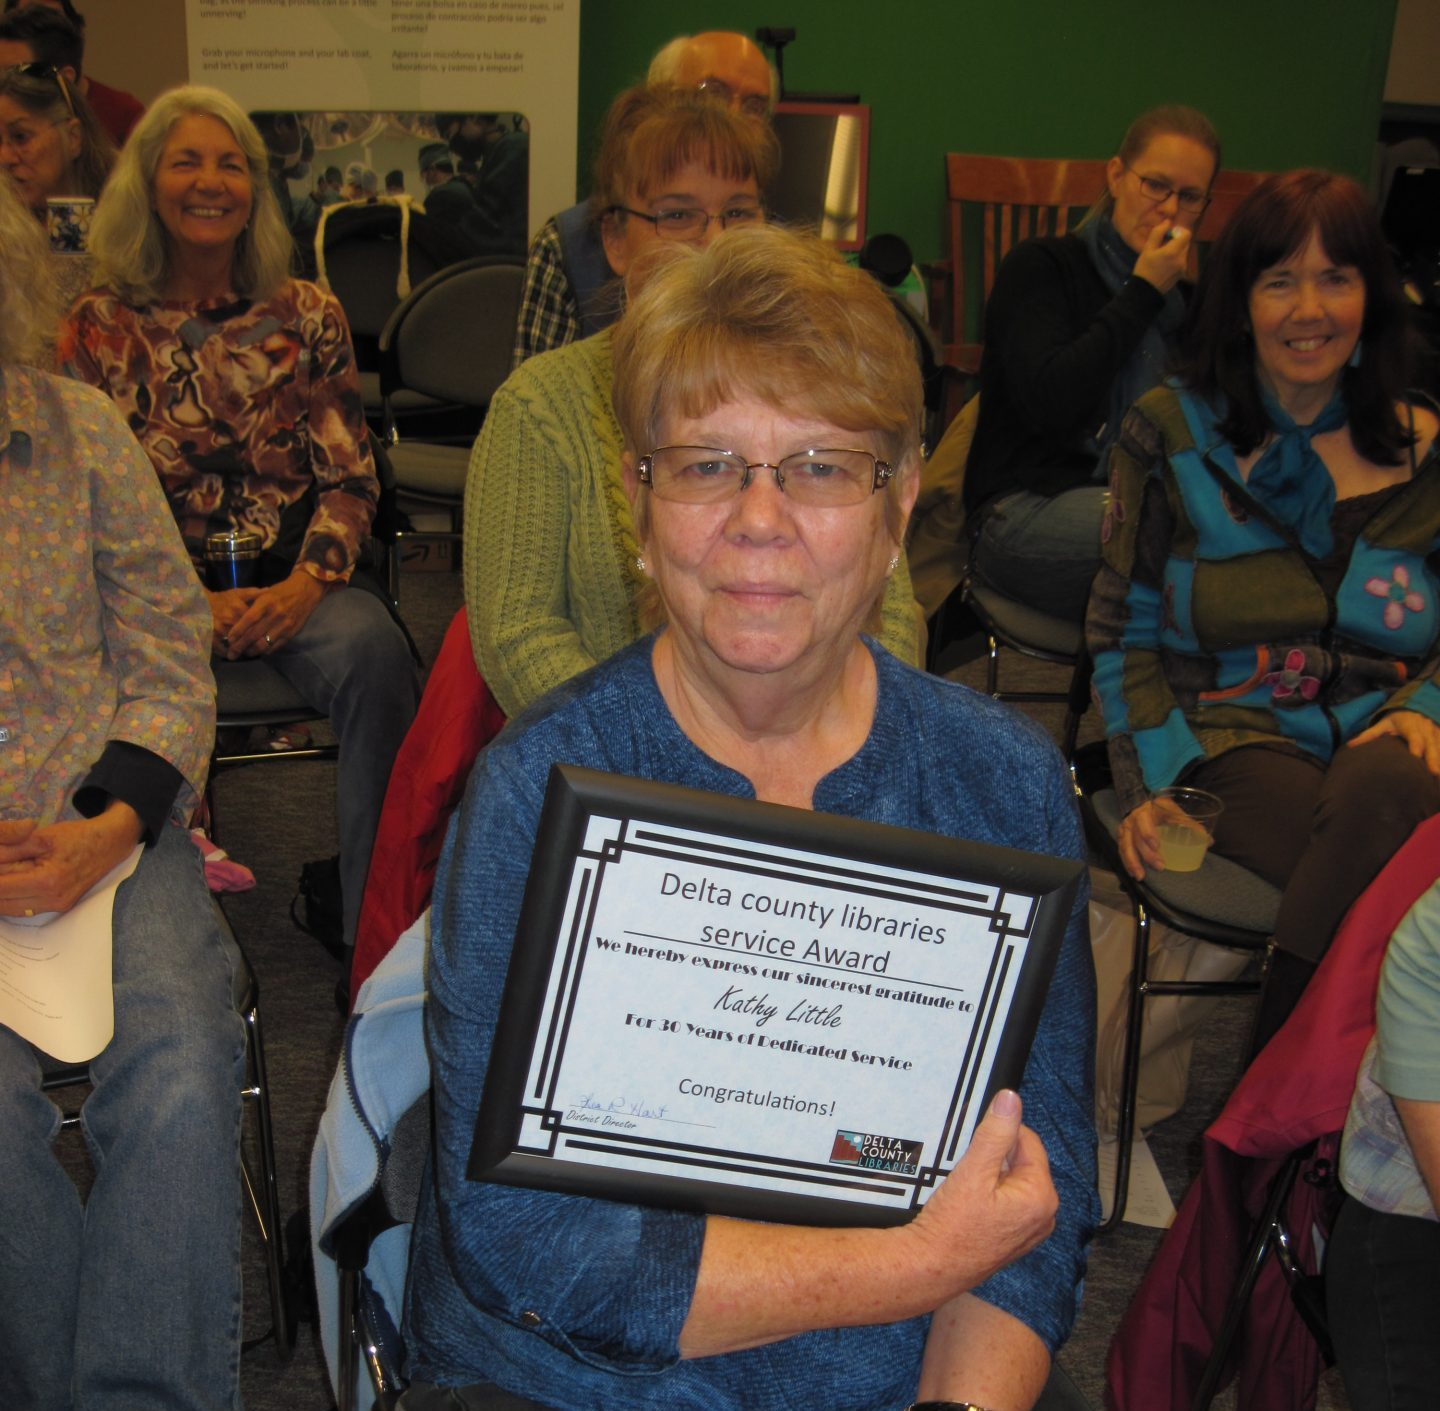 Little retires after 36 years of service at Crawford Library